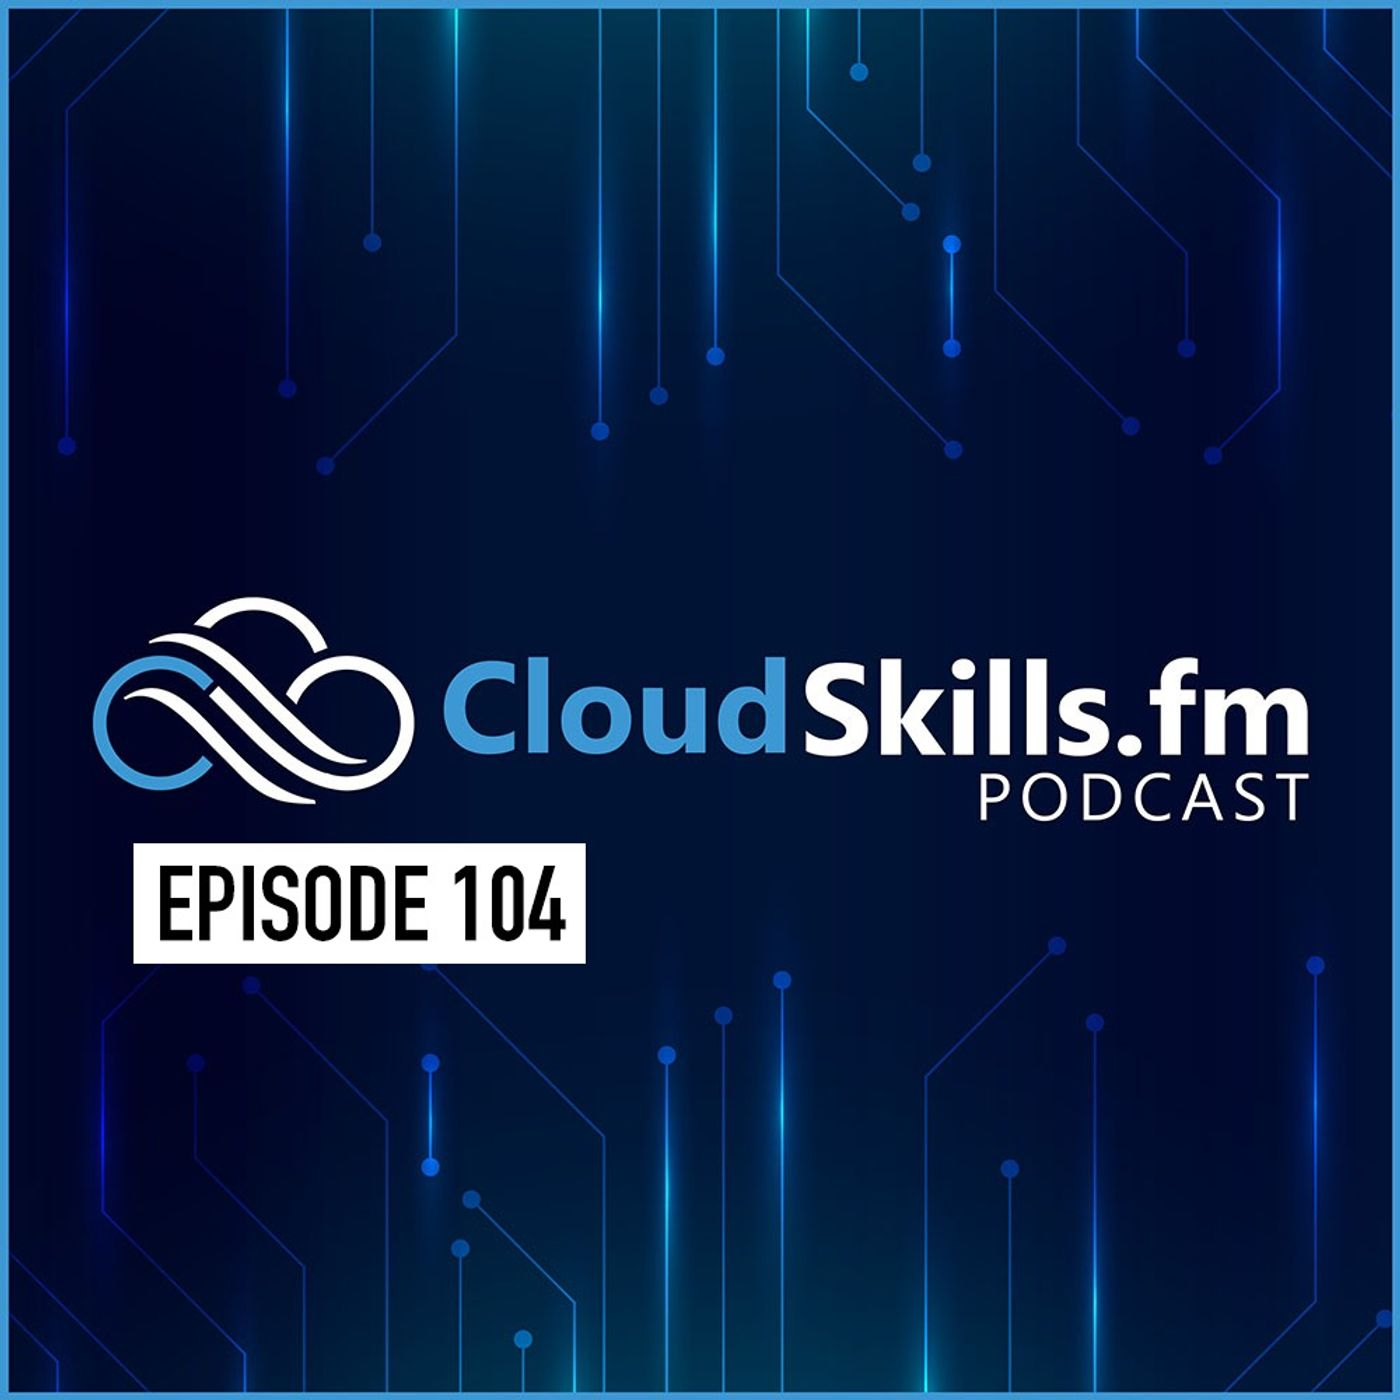 104: John Lunn on Remote Work, Live Streaming, and Learning Cloud